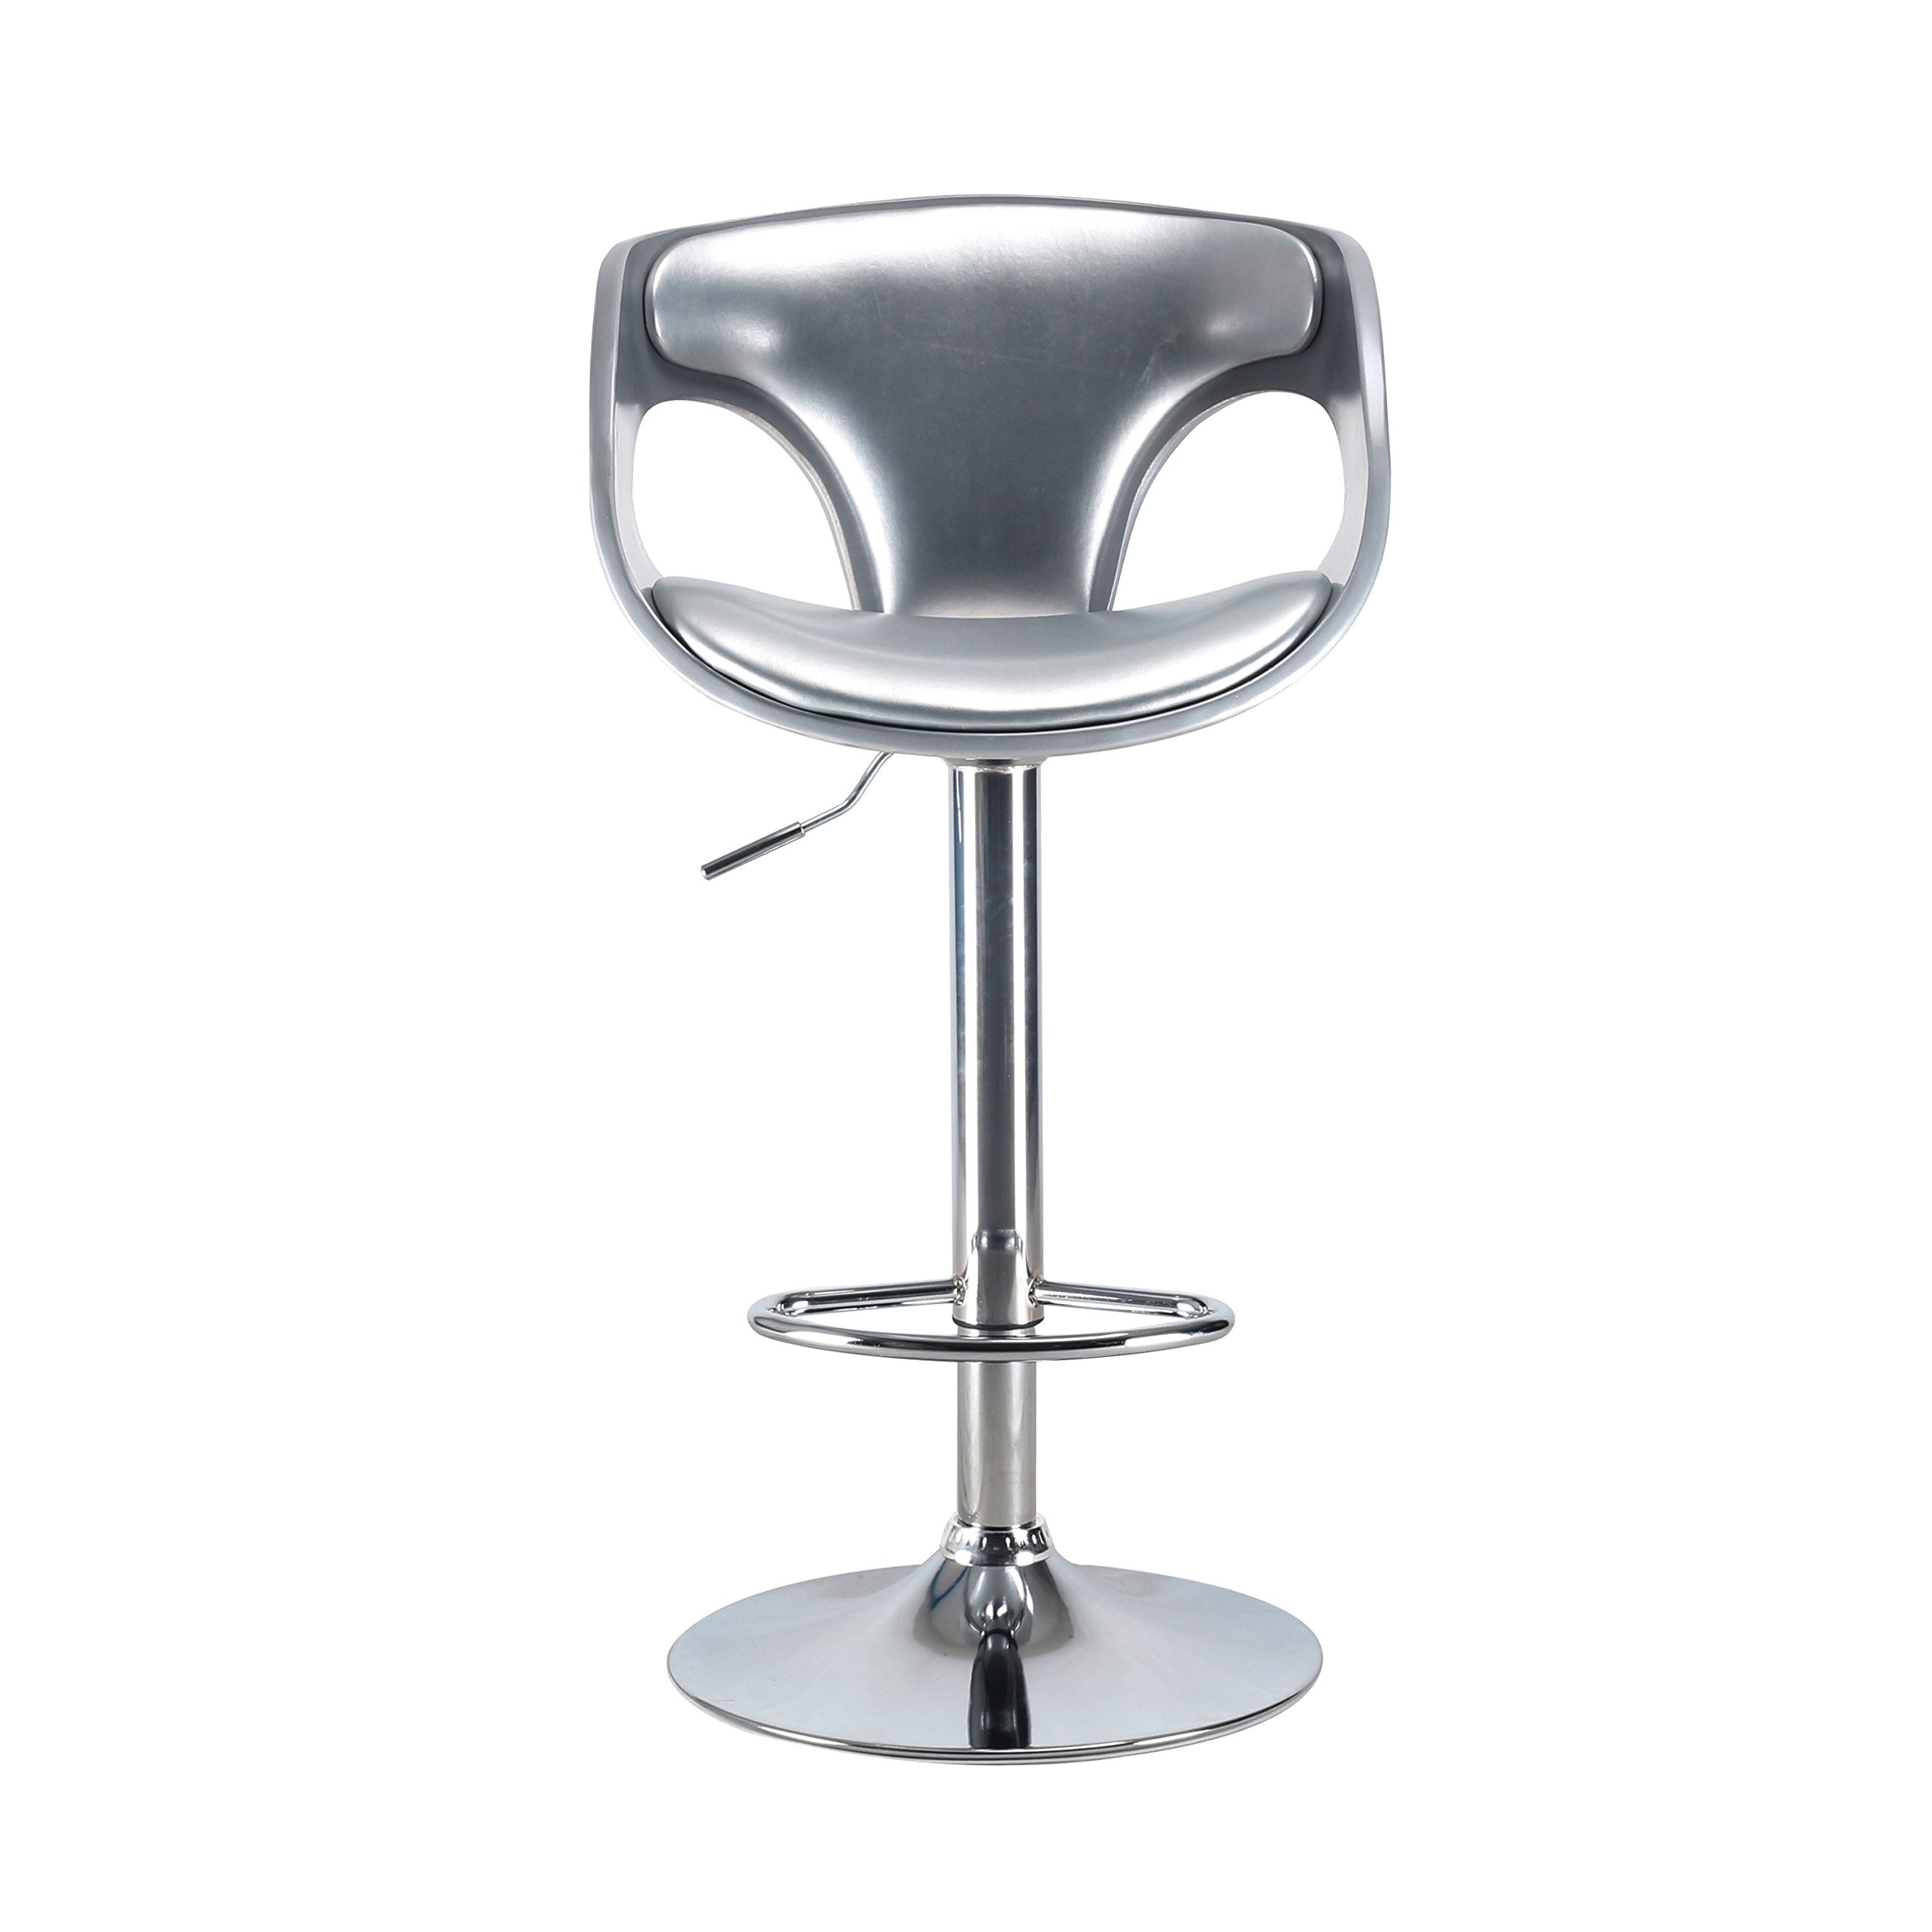 Modern Adjustable Swivel Bar Stool Chair Faux Leather Padded and Plastic Back Counter Height Stools for Indoor Home Bar Kitchen by S S'DENTE FURNISHING THE HOME